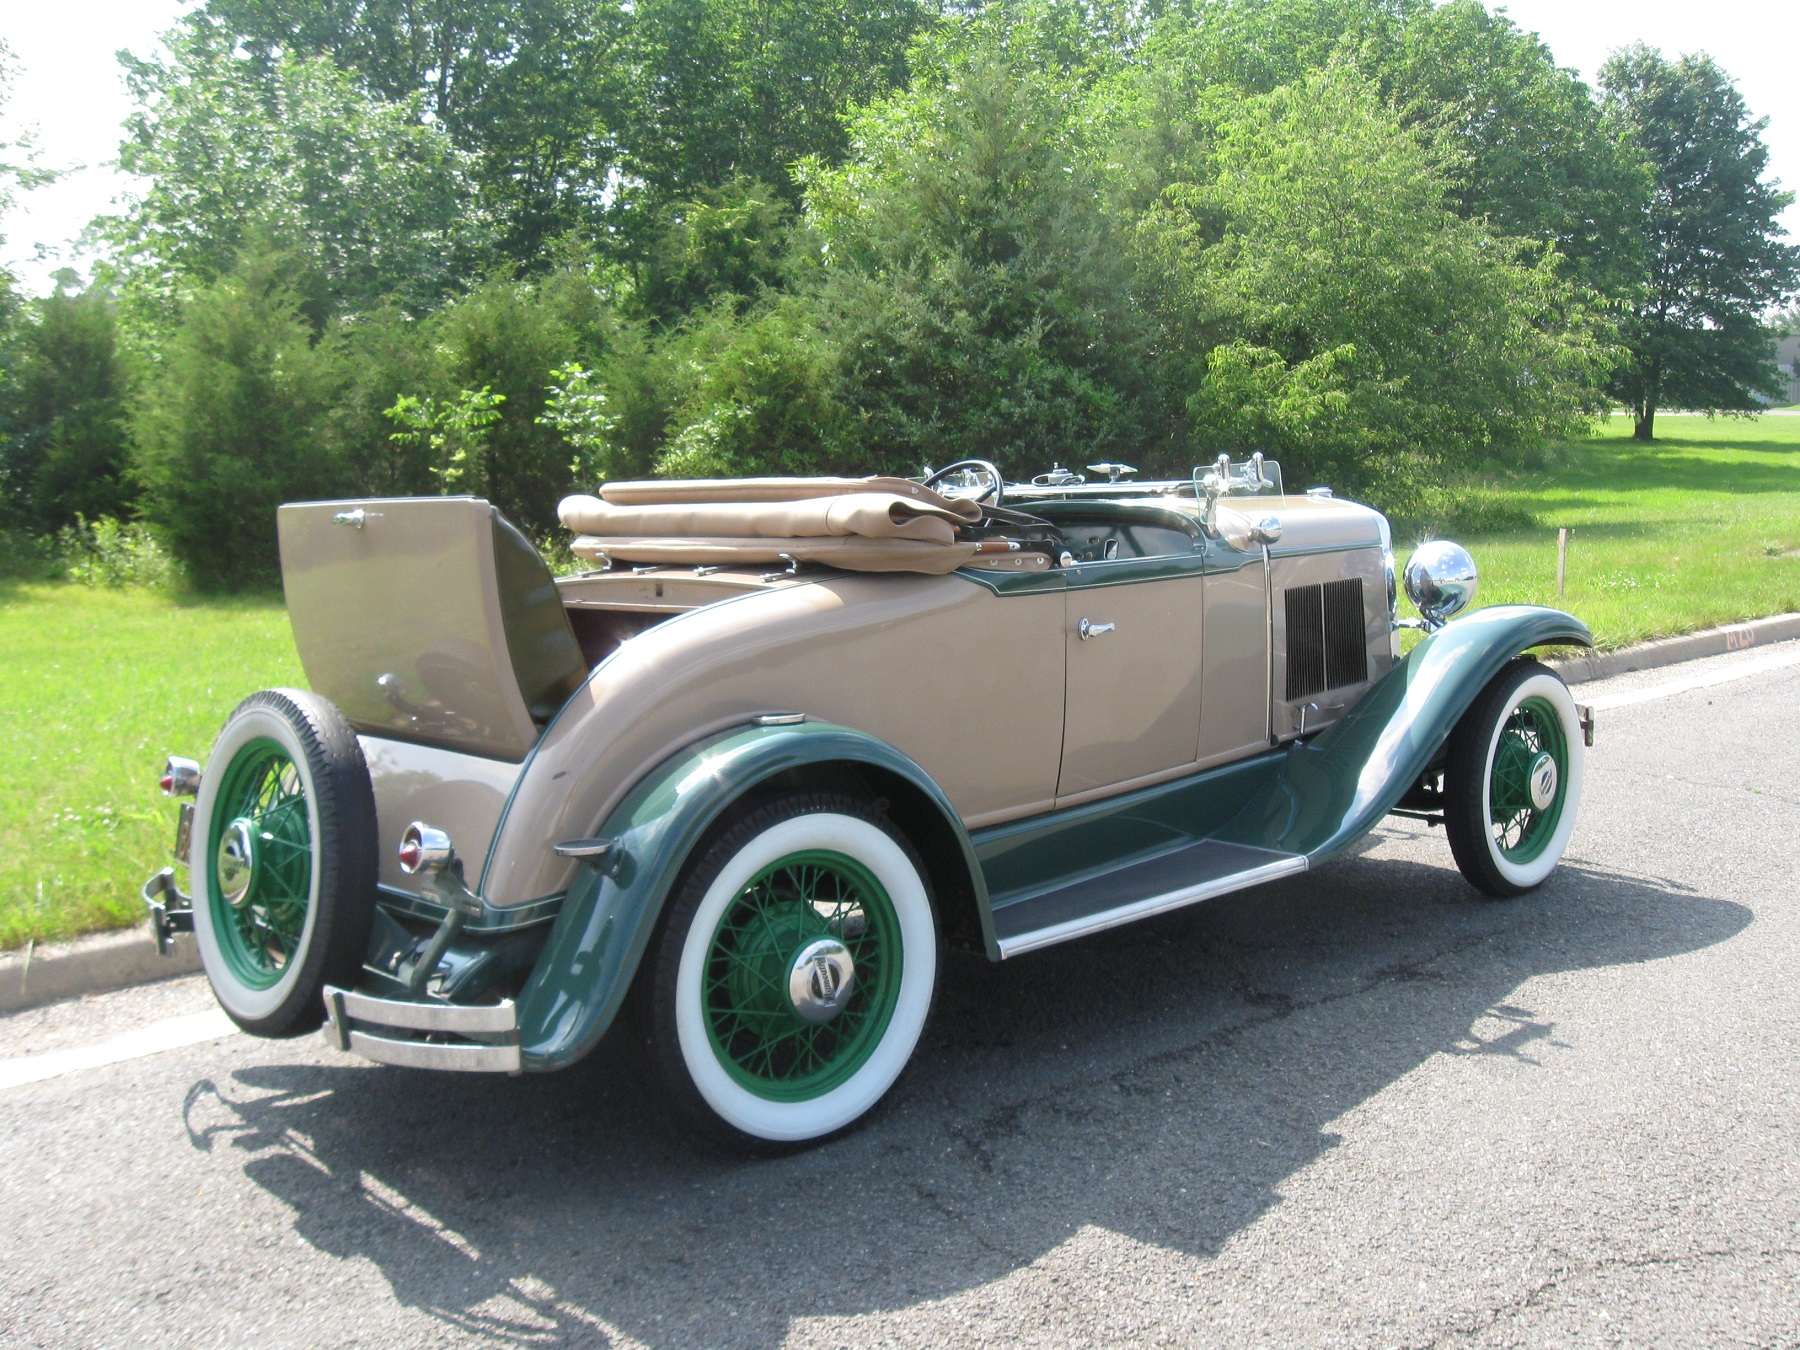 hight resolution of beneath the engine hood ventilated with 30 louvers on each side is an inline four cylinder 196 cubic inch engine that developed 48 horsepower